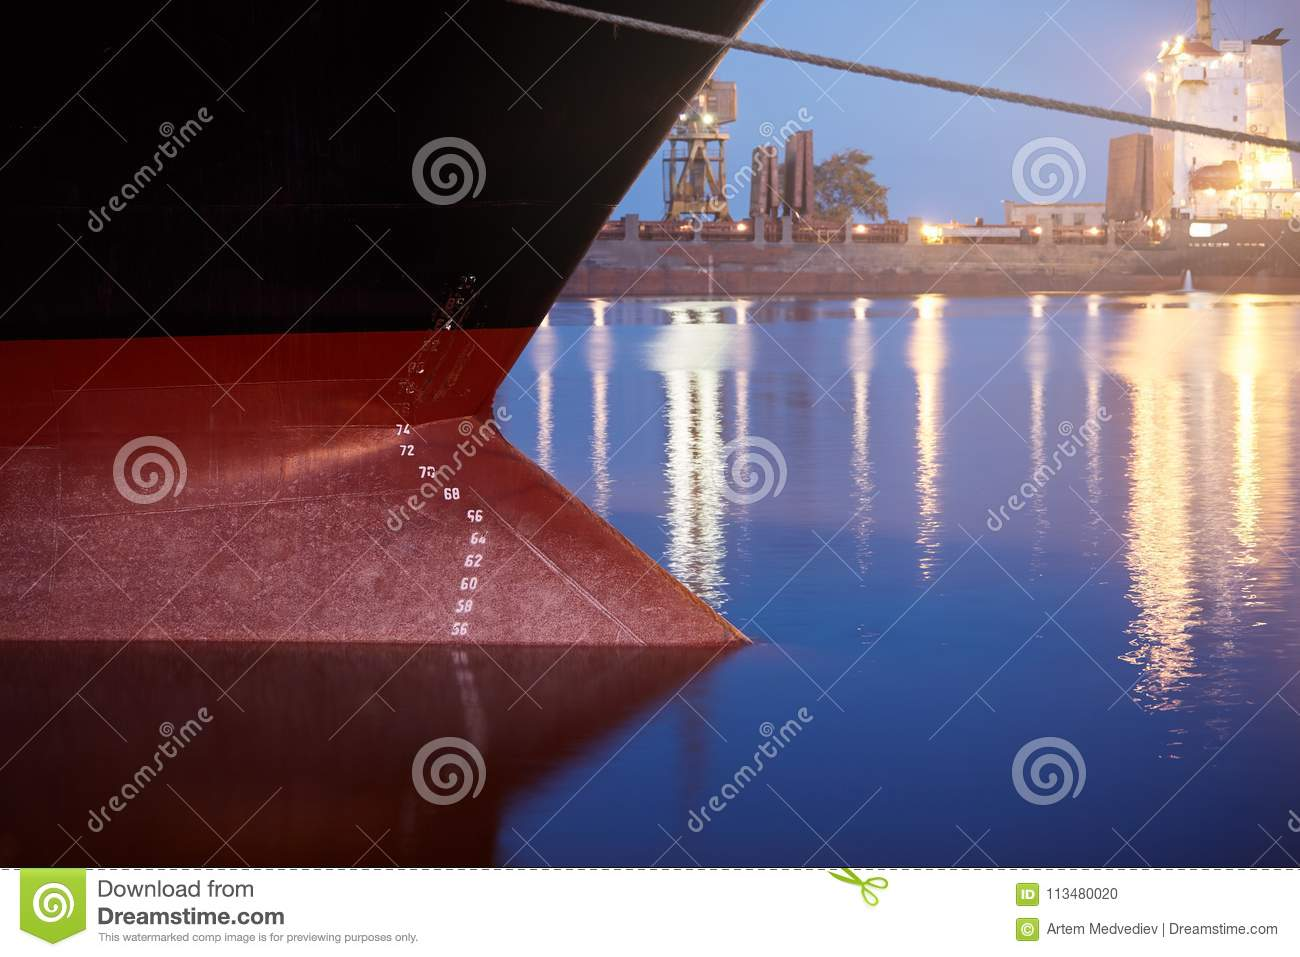 Draft marks on a ship - waterline numbers on bow and stern of a vessel at seaport at night